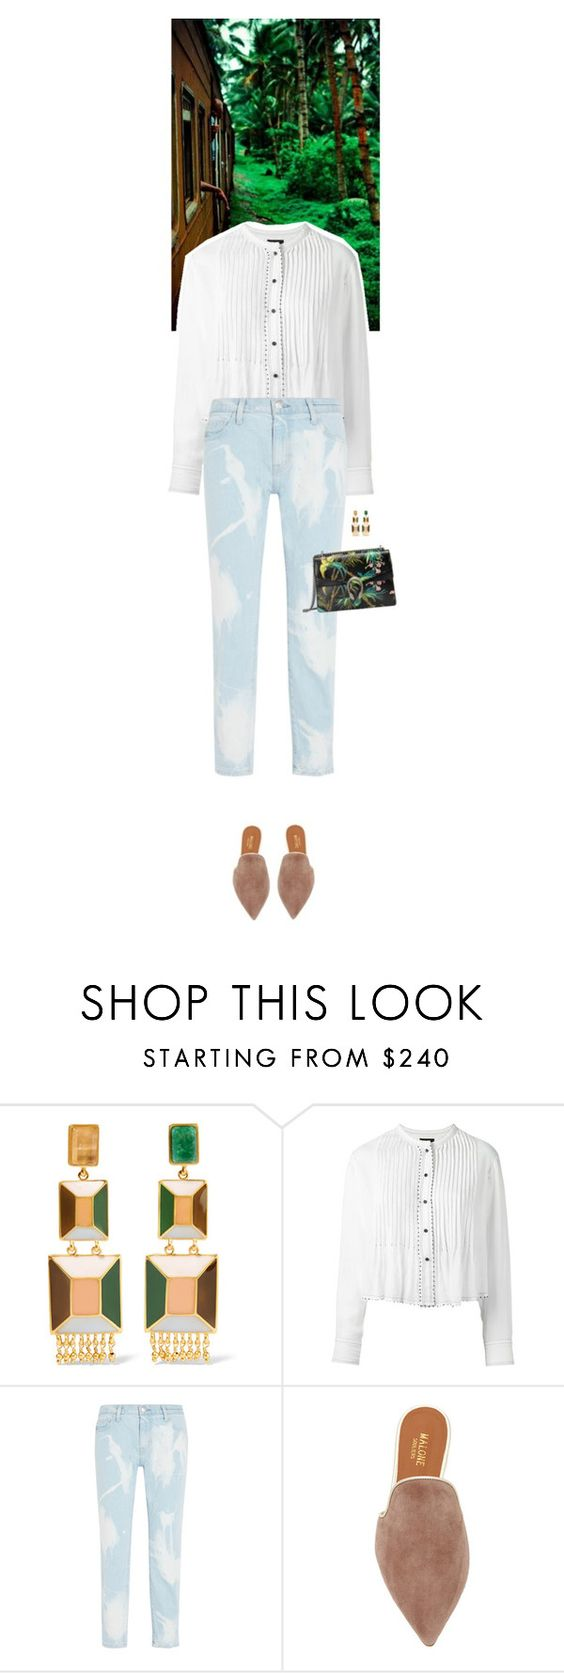 """""""Outfit of the Day"""" by wizmurphy ❤ liked on Polyvore featuring Paula Mendoza, Isabel Marant, Current/Elliott, Malone Souliers, Gucci, ootd and boyfriendjeans"""